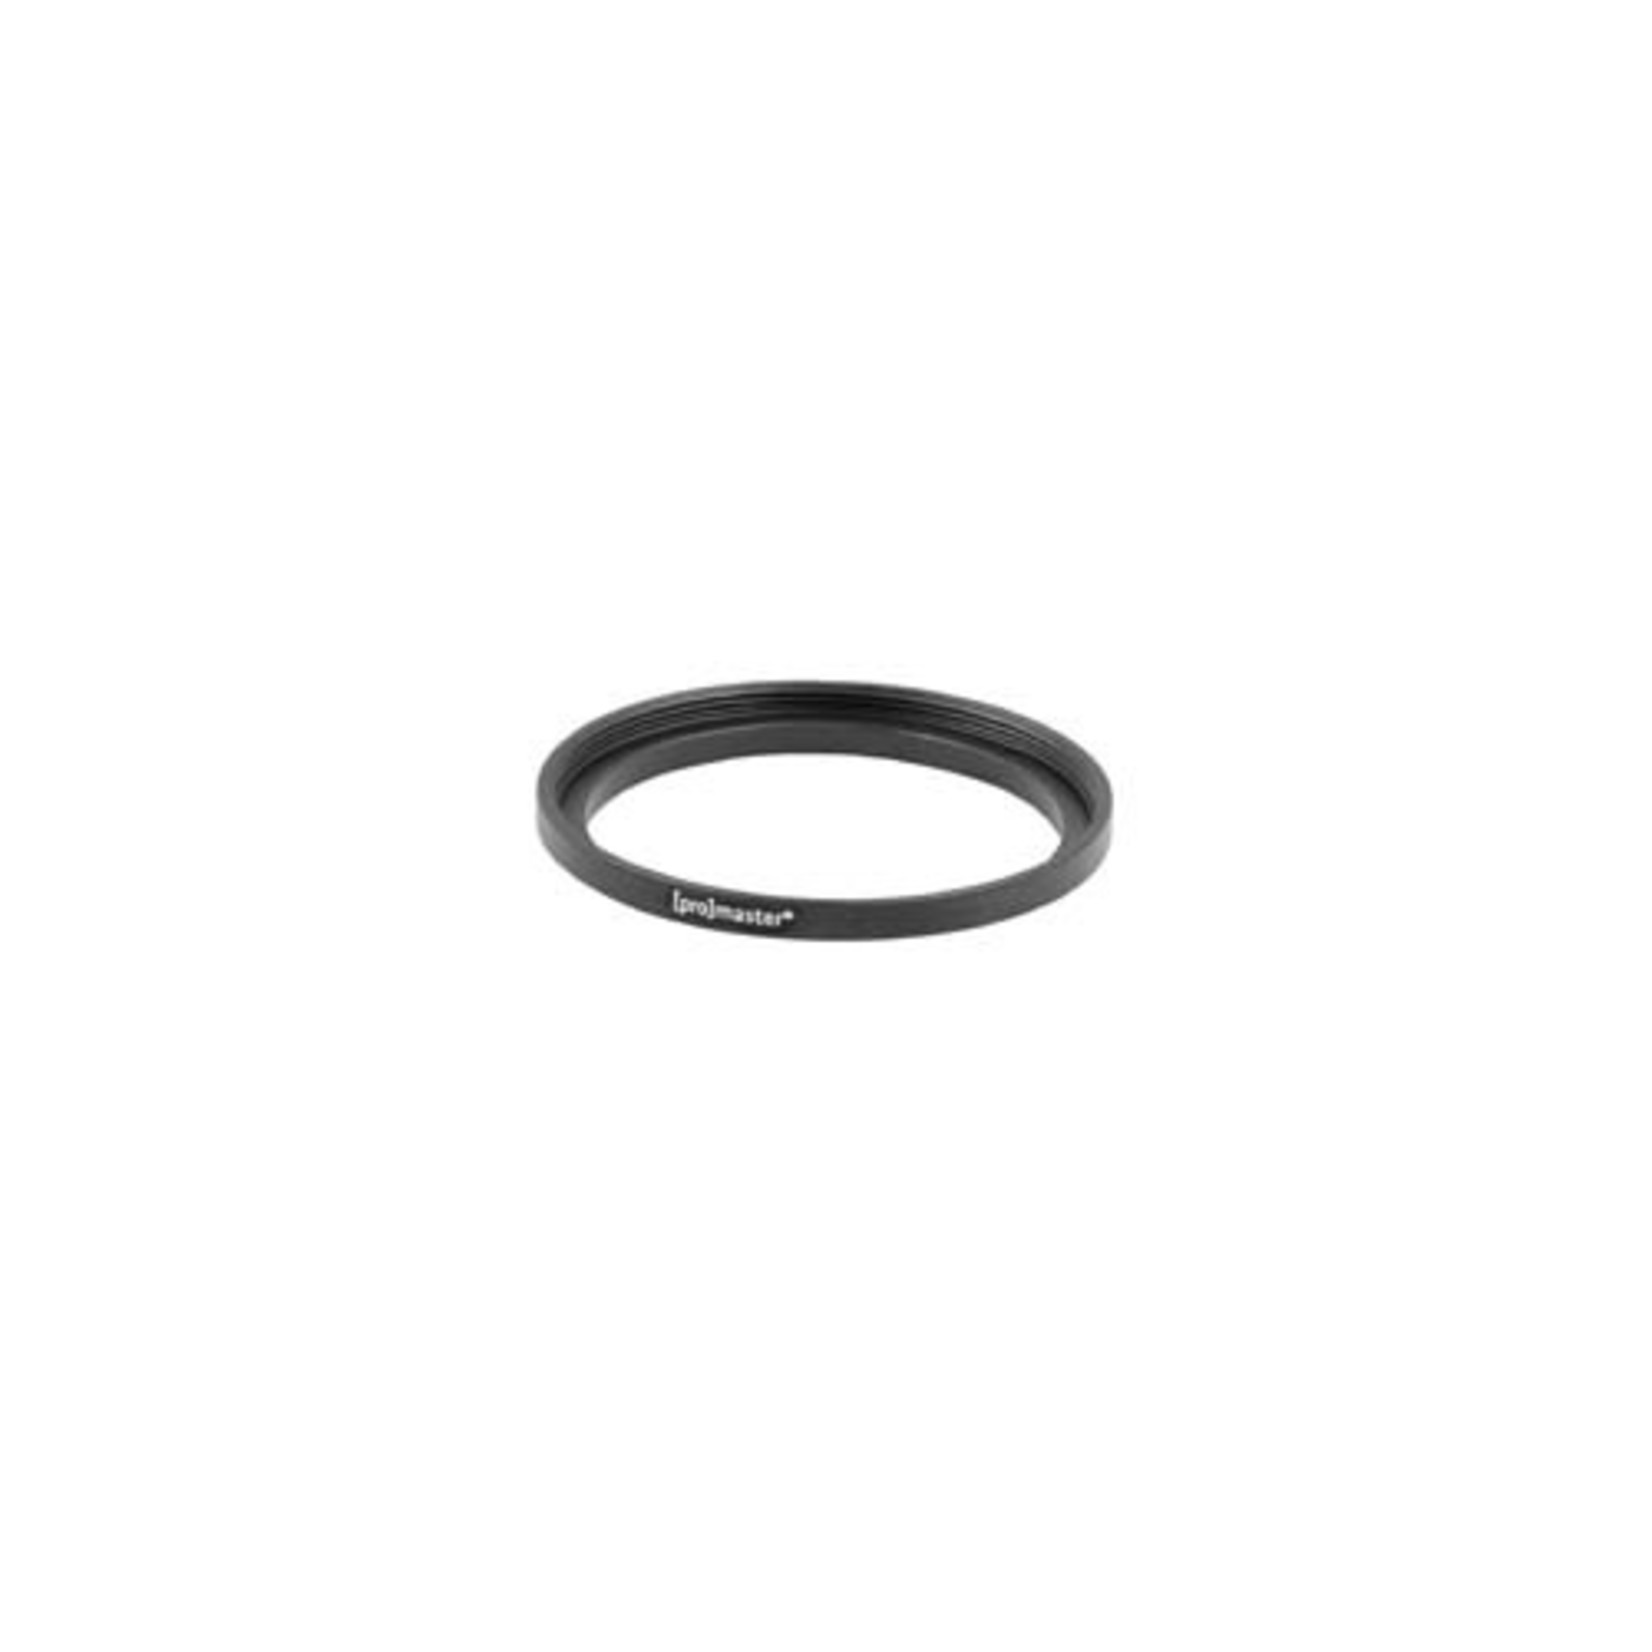 ProMaster Step Up Ring - 40.5mm-43mm - 40.5mm - 43mm